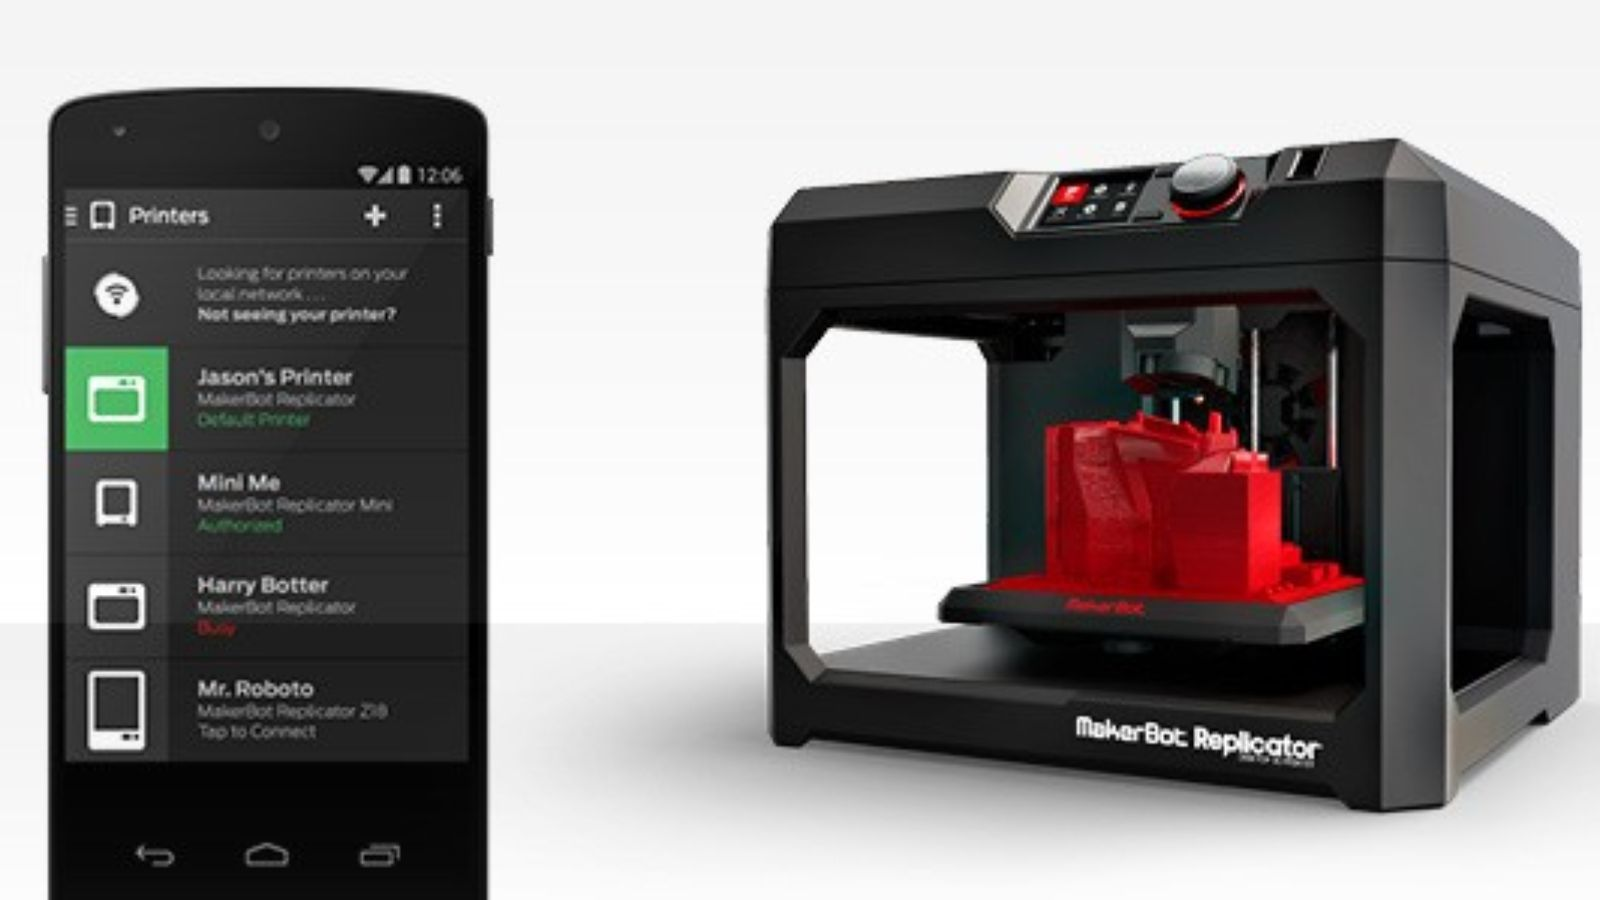 You can now 3D print right from your Android phone with a new MakerBot Industries app: http://theverge.com/e/7651186